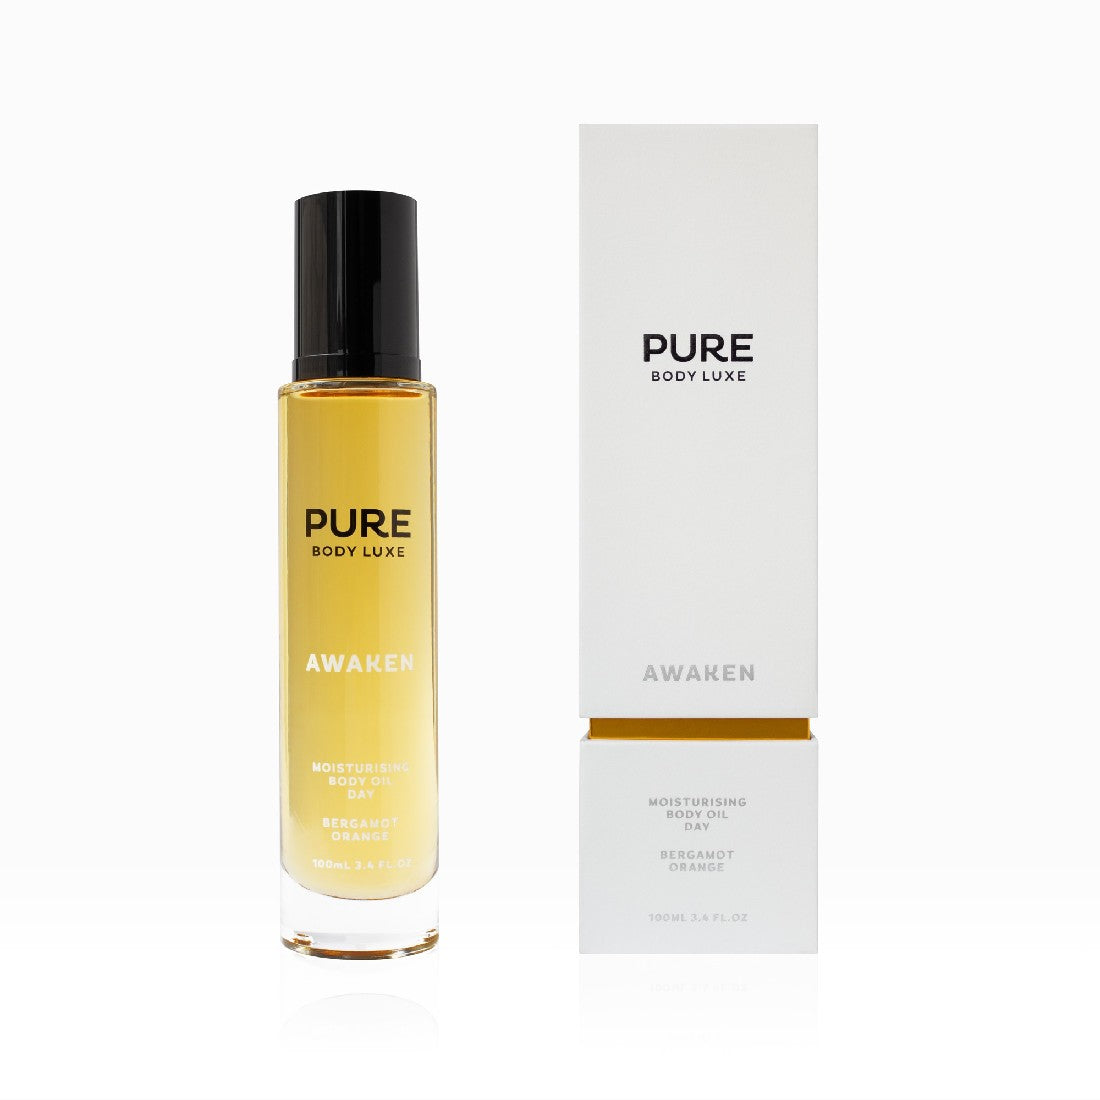 Pure Body Luxe 100ml - Awaken